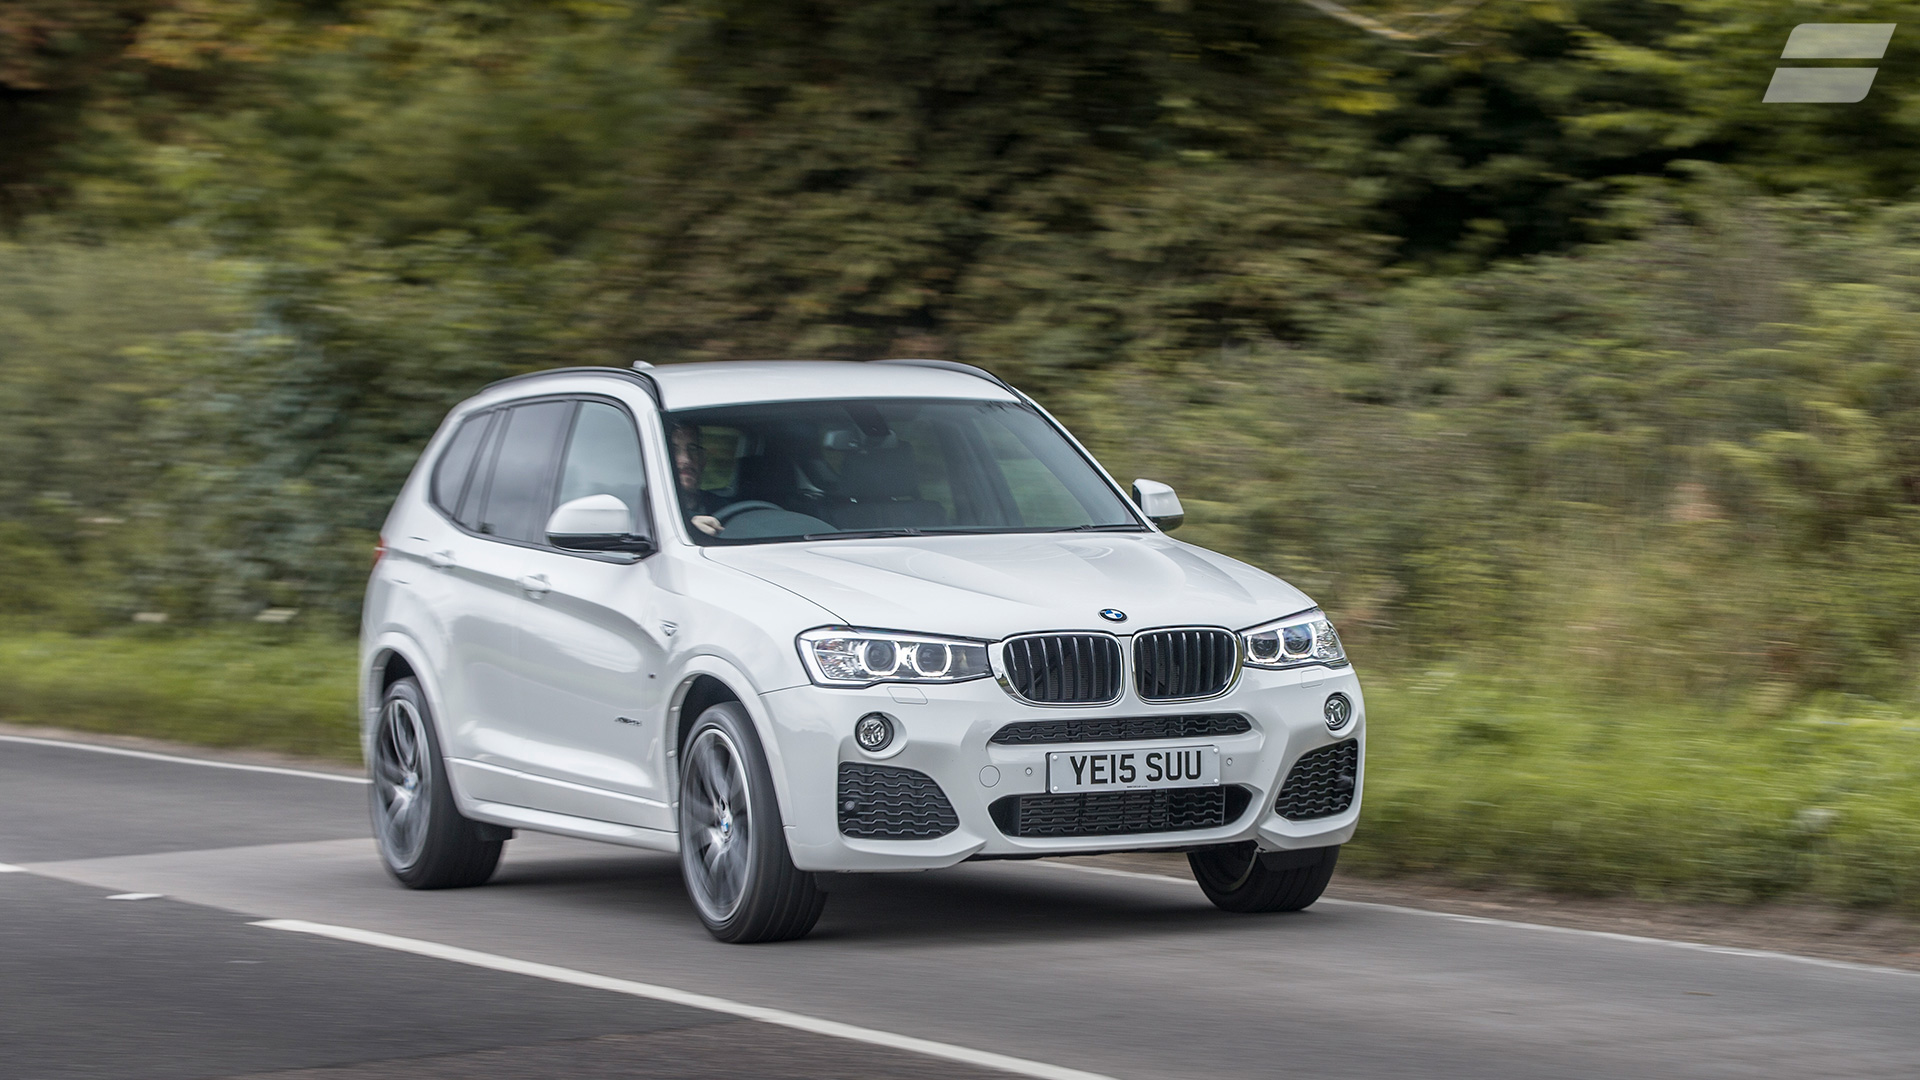 BMW X3 SUV (2014 - ) review